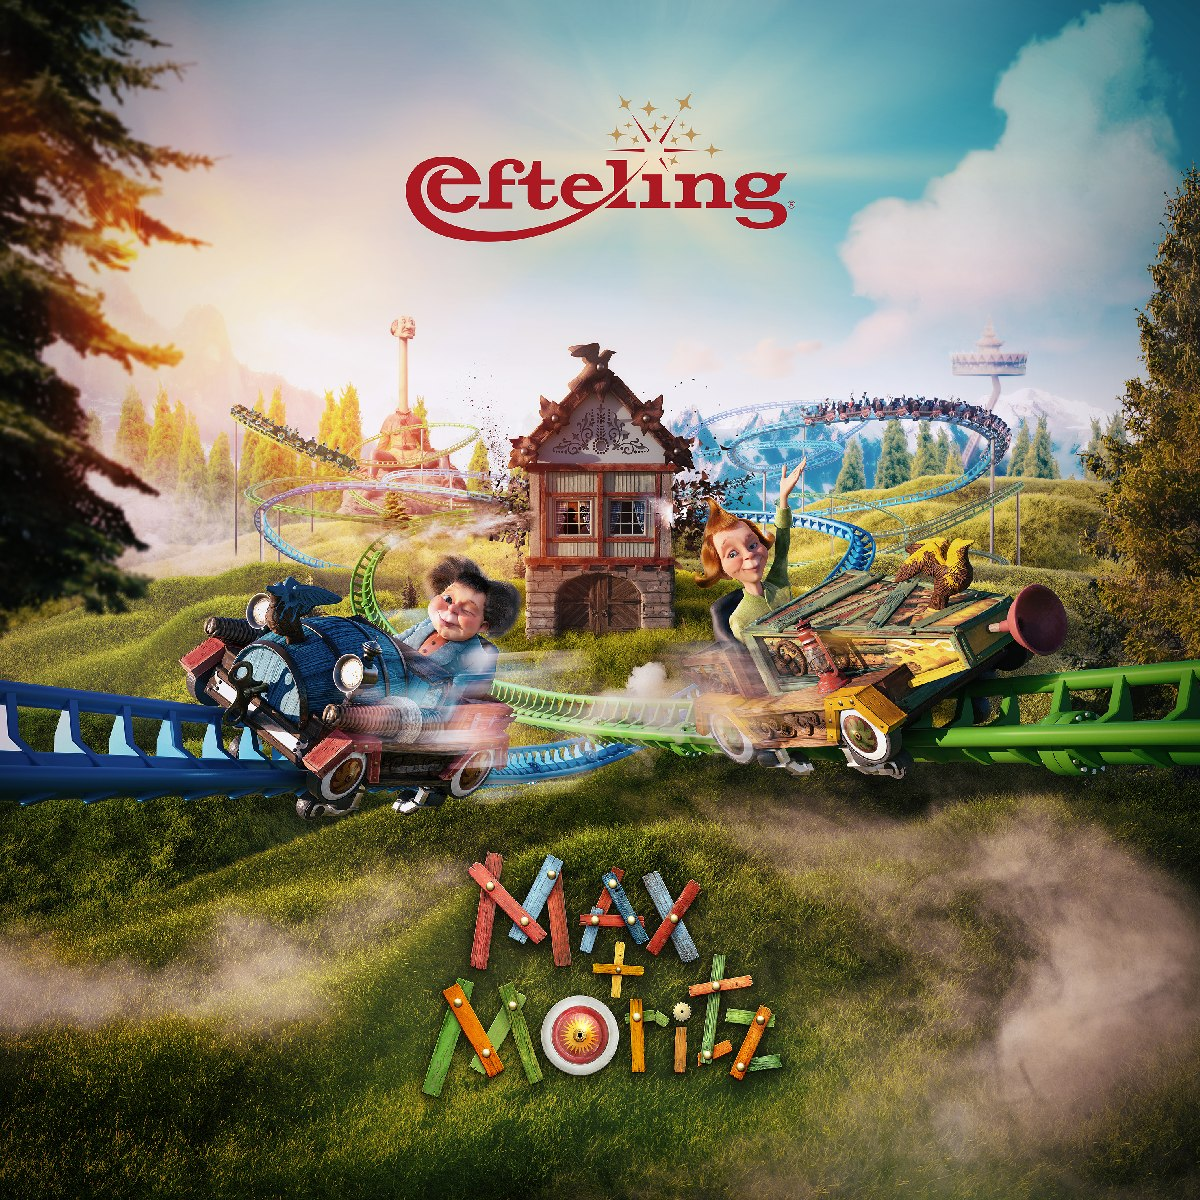 The Rascals Are Ready This Summer in Efteling